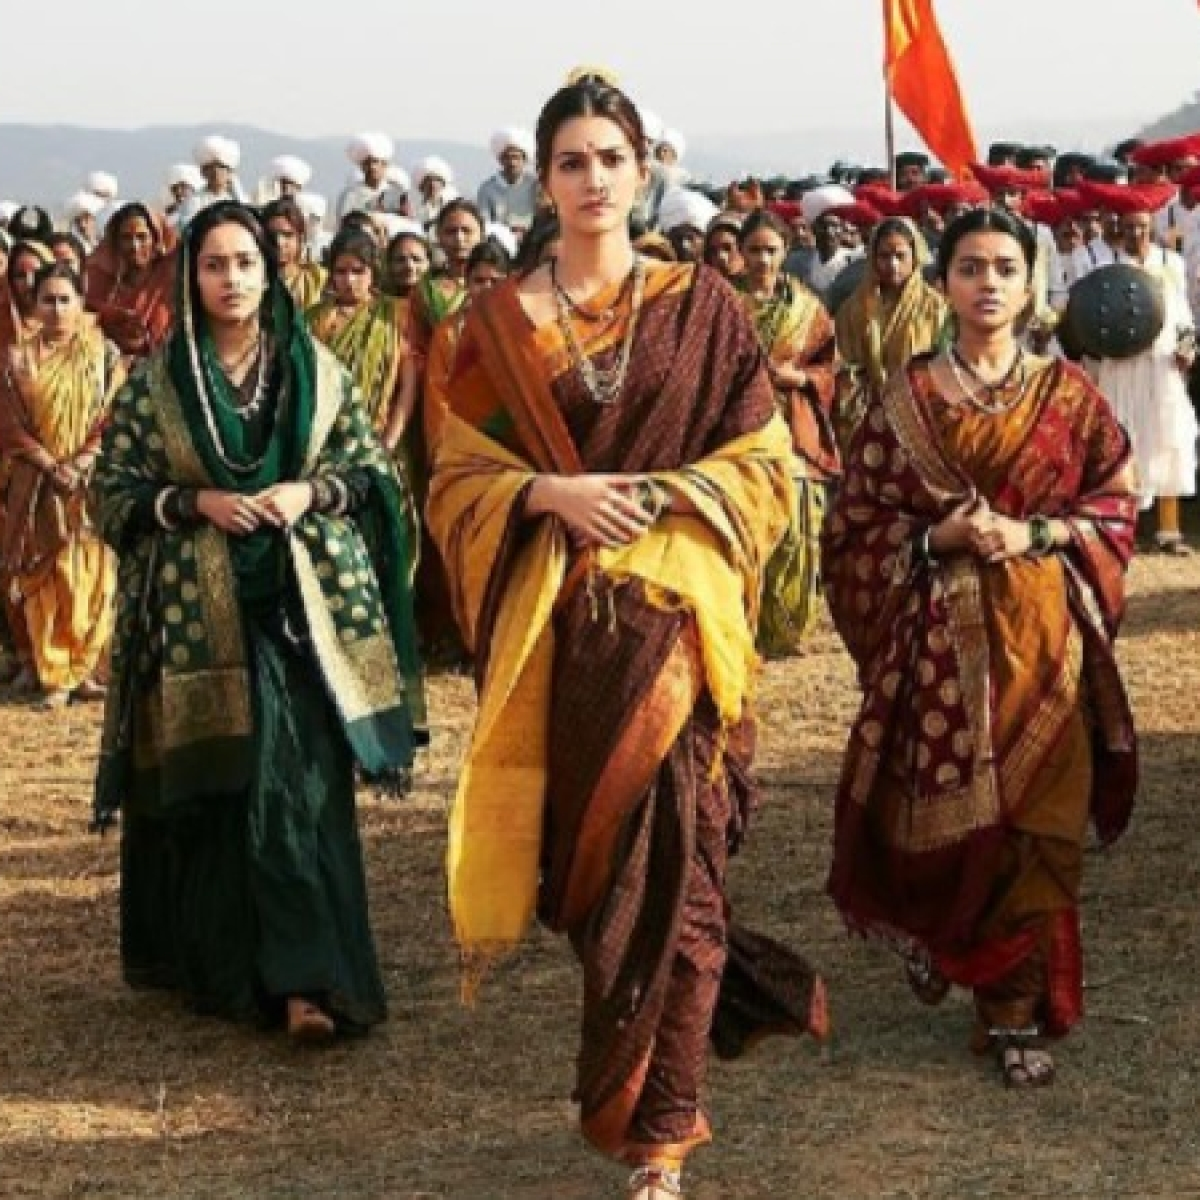 Kriti Sanon finds 'Parvati Bai' from 'Panipat' as her most honorable role onscreen